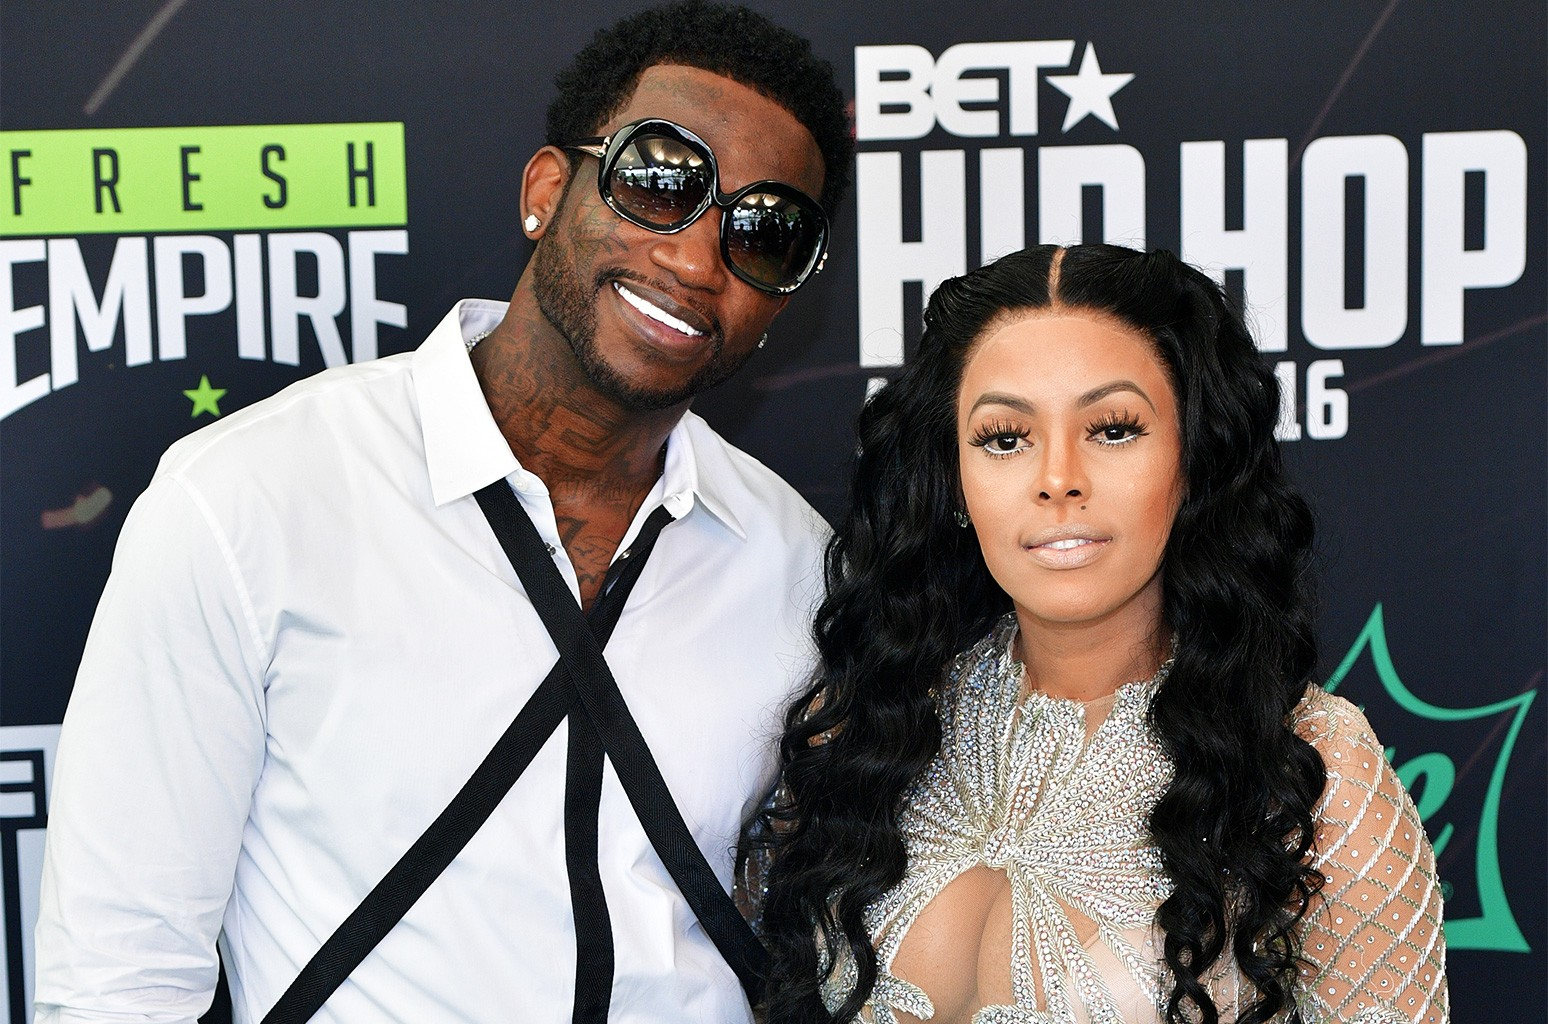 Gucci Mane and Keyshia Ka'oir attend the BET Hip Hop Awards 2016 Green Carpet at Cobb Energy Performing Arts Center on Sept. 17, 2016 in Atlanta.